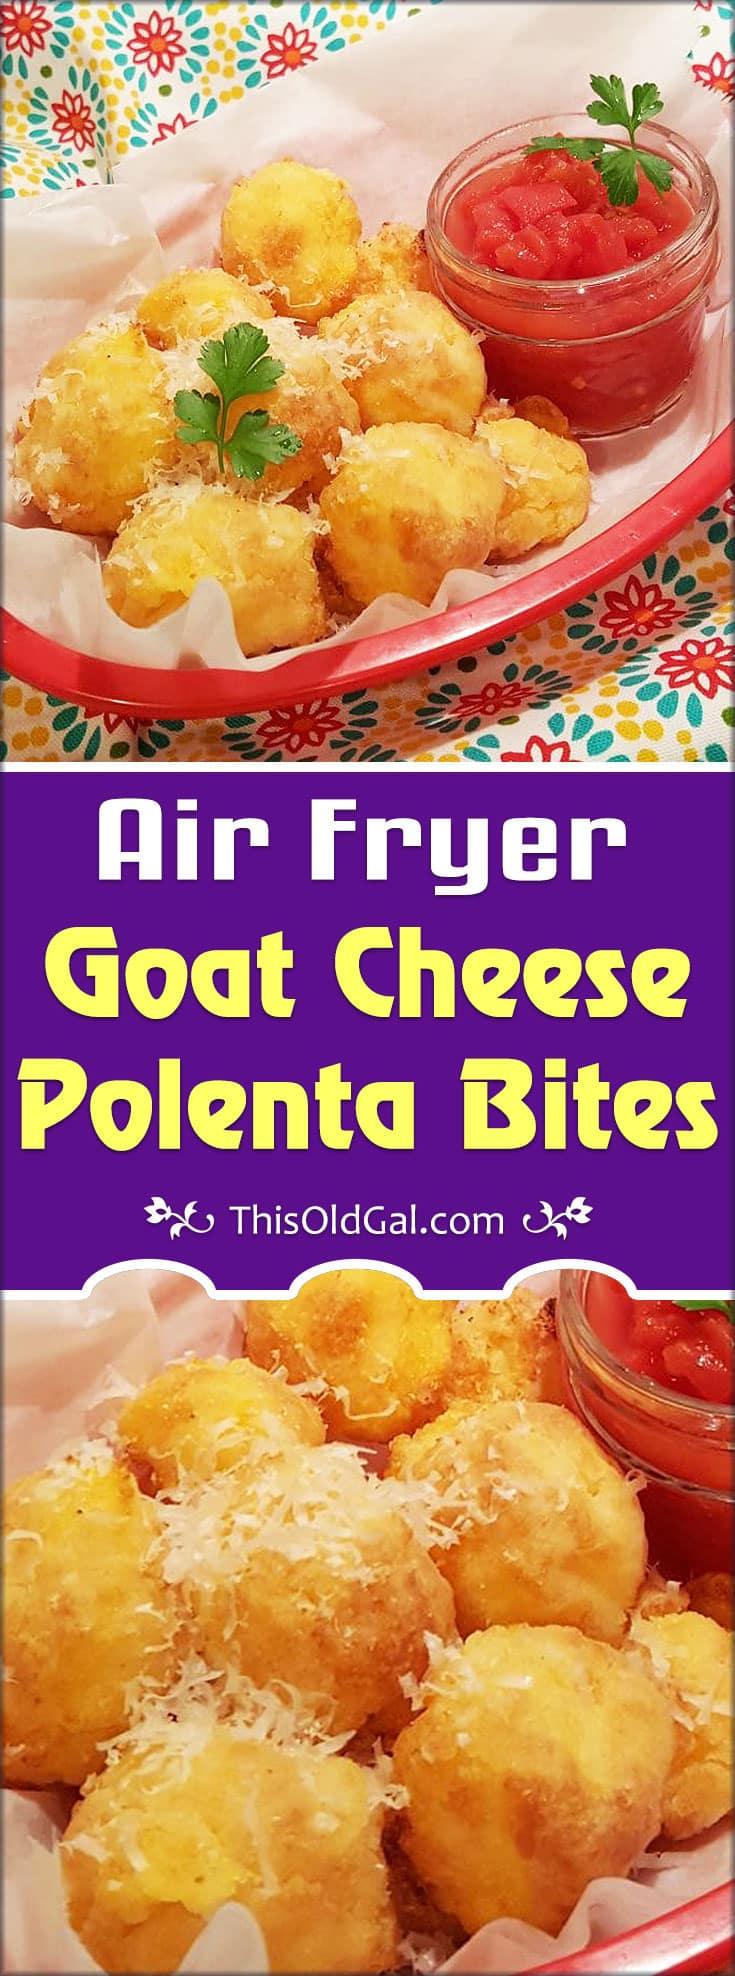 Air Fryer Goat Cheese Polenta Bites